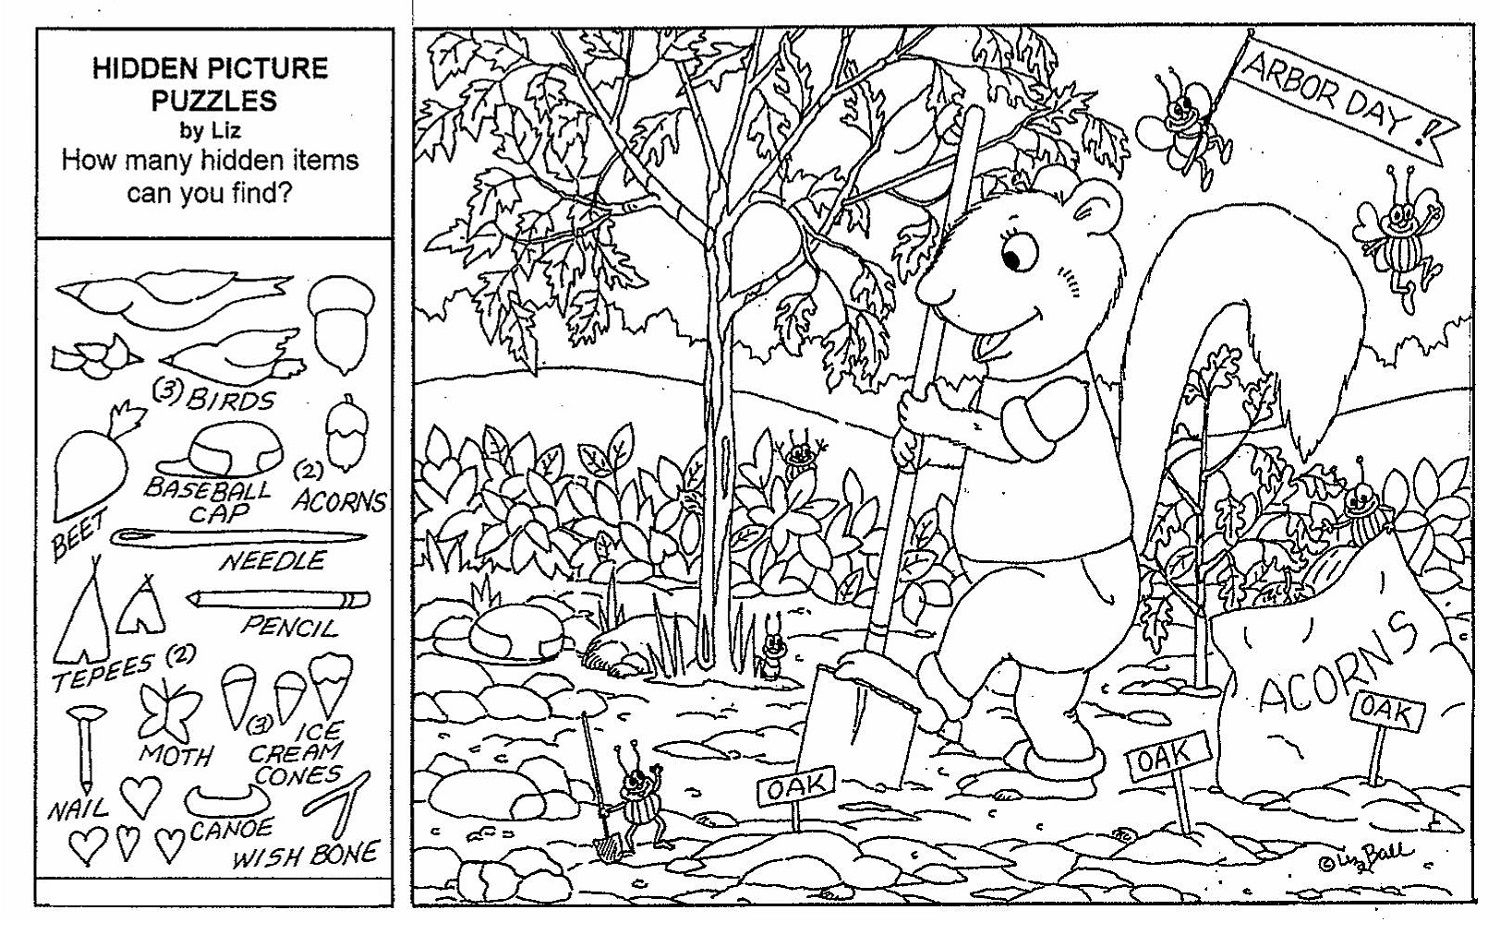 Hidden Objects Worksheets - Briefencounters Worksheet Template - Printable Hidden Puzzle Games